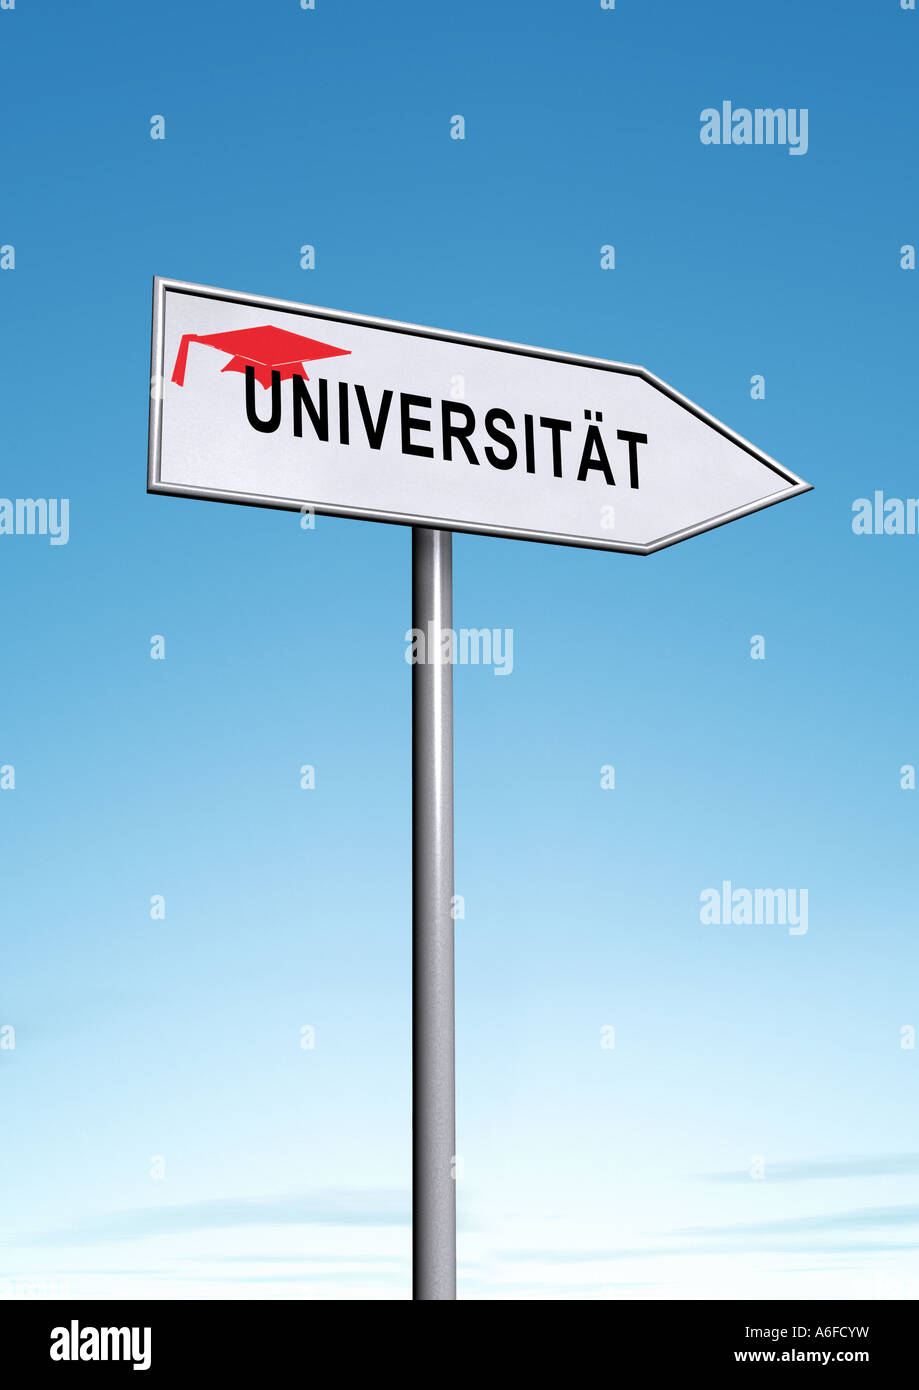 Universität Universität Stockbild